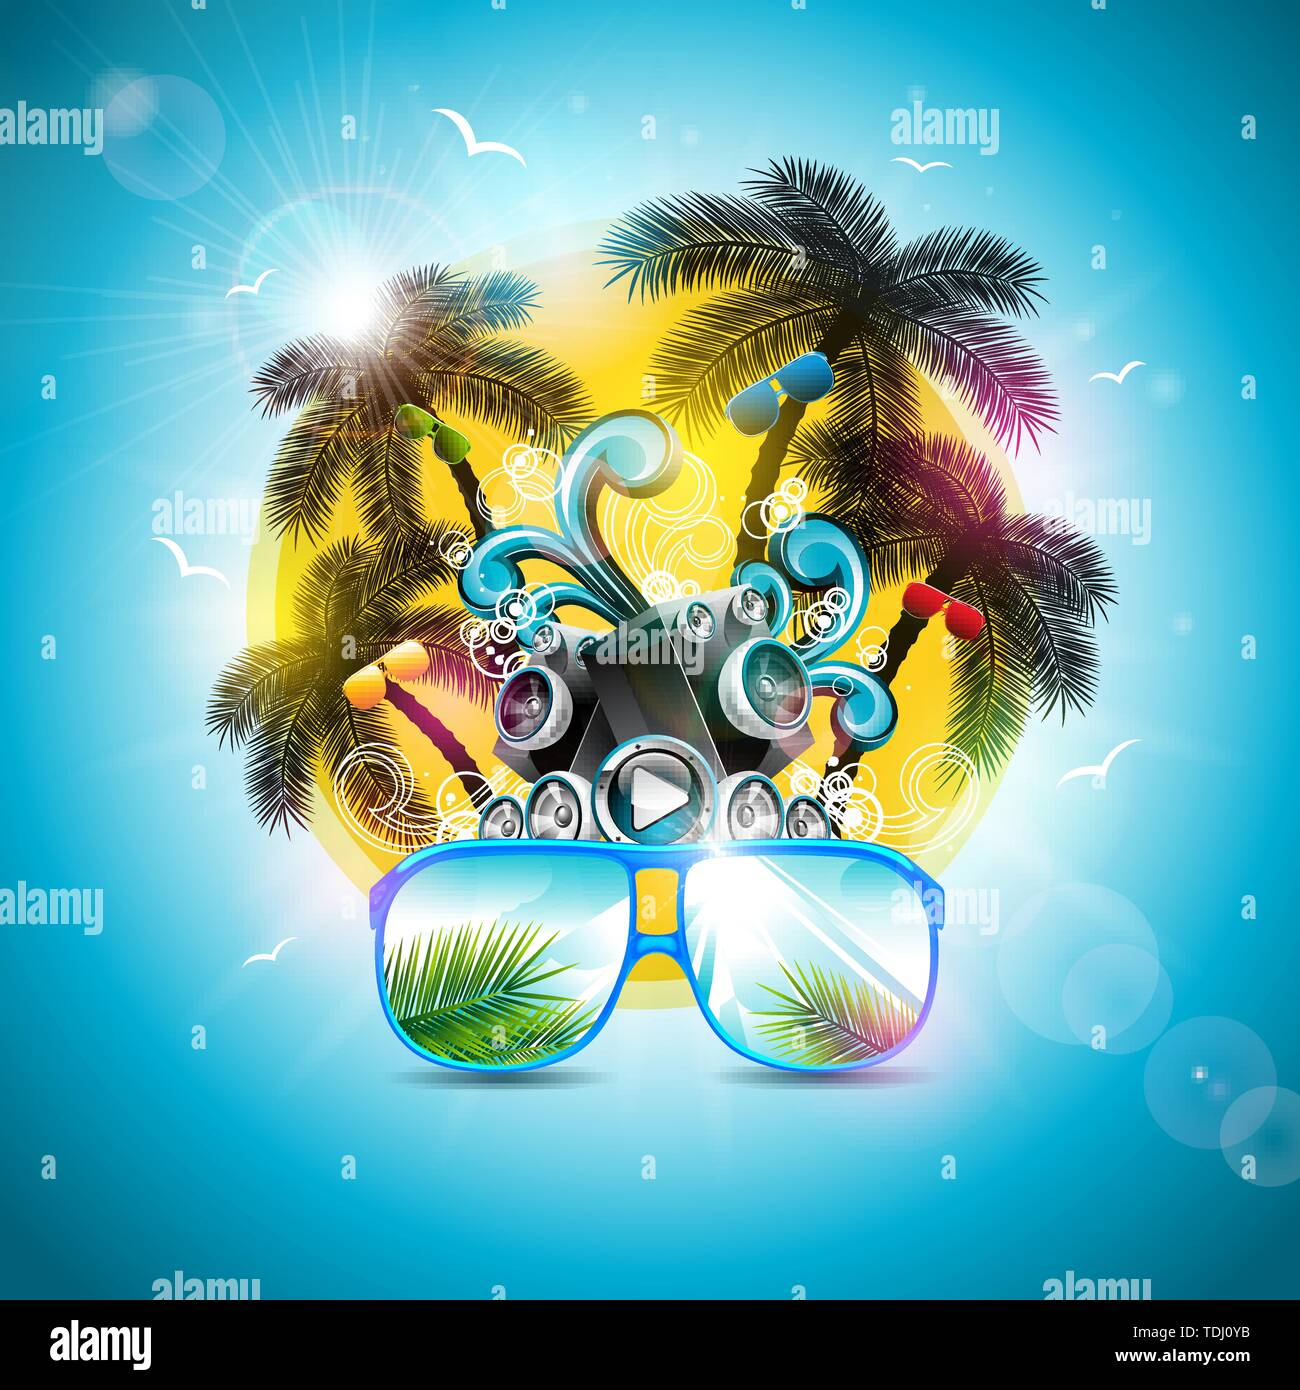 ecbc5e130 Summer Holiday Design with Speaker and Sunglasses on Blue Background.  Vector Illustration with Tropical Palm